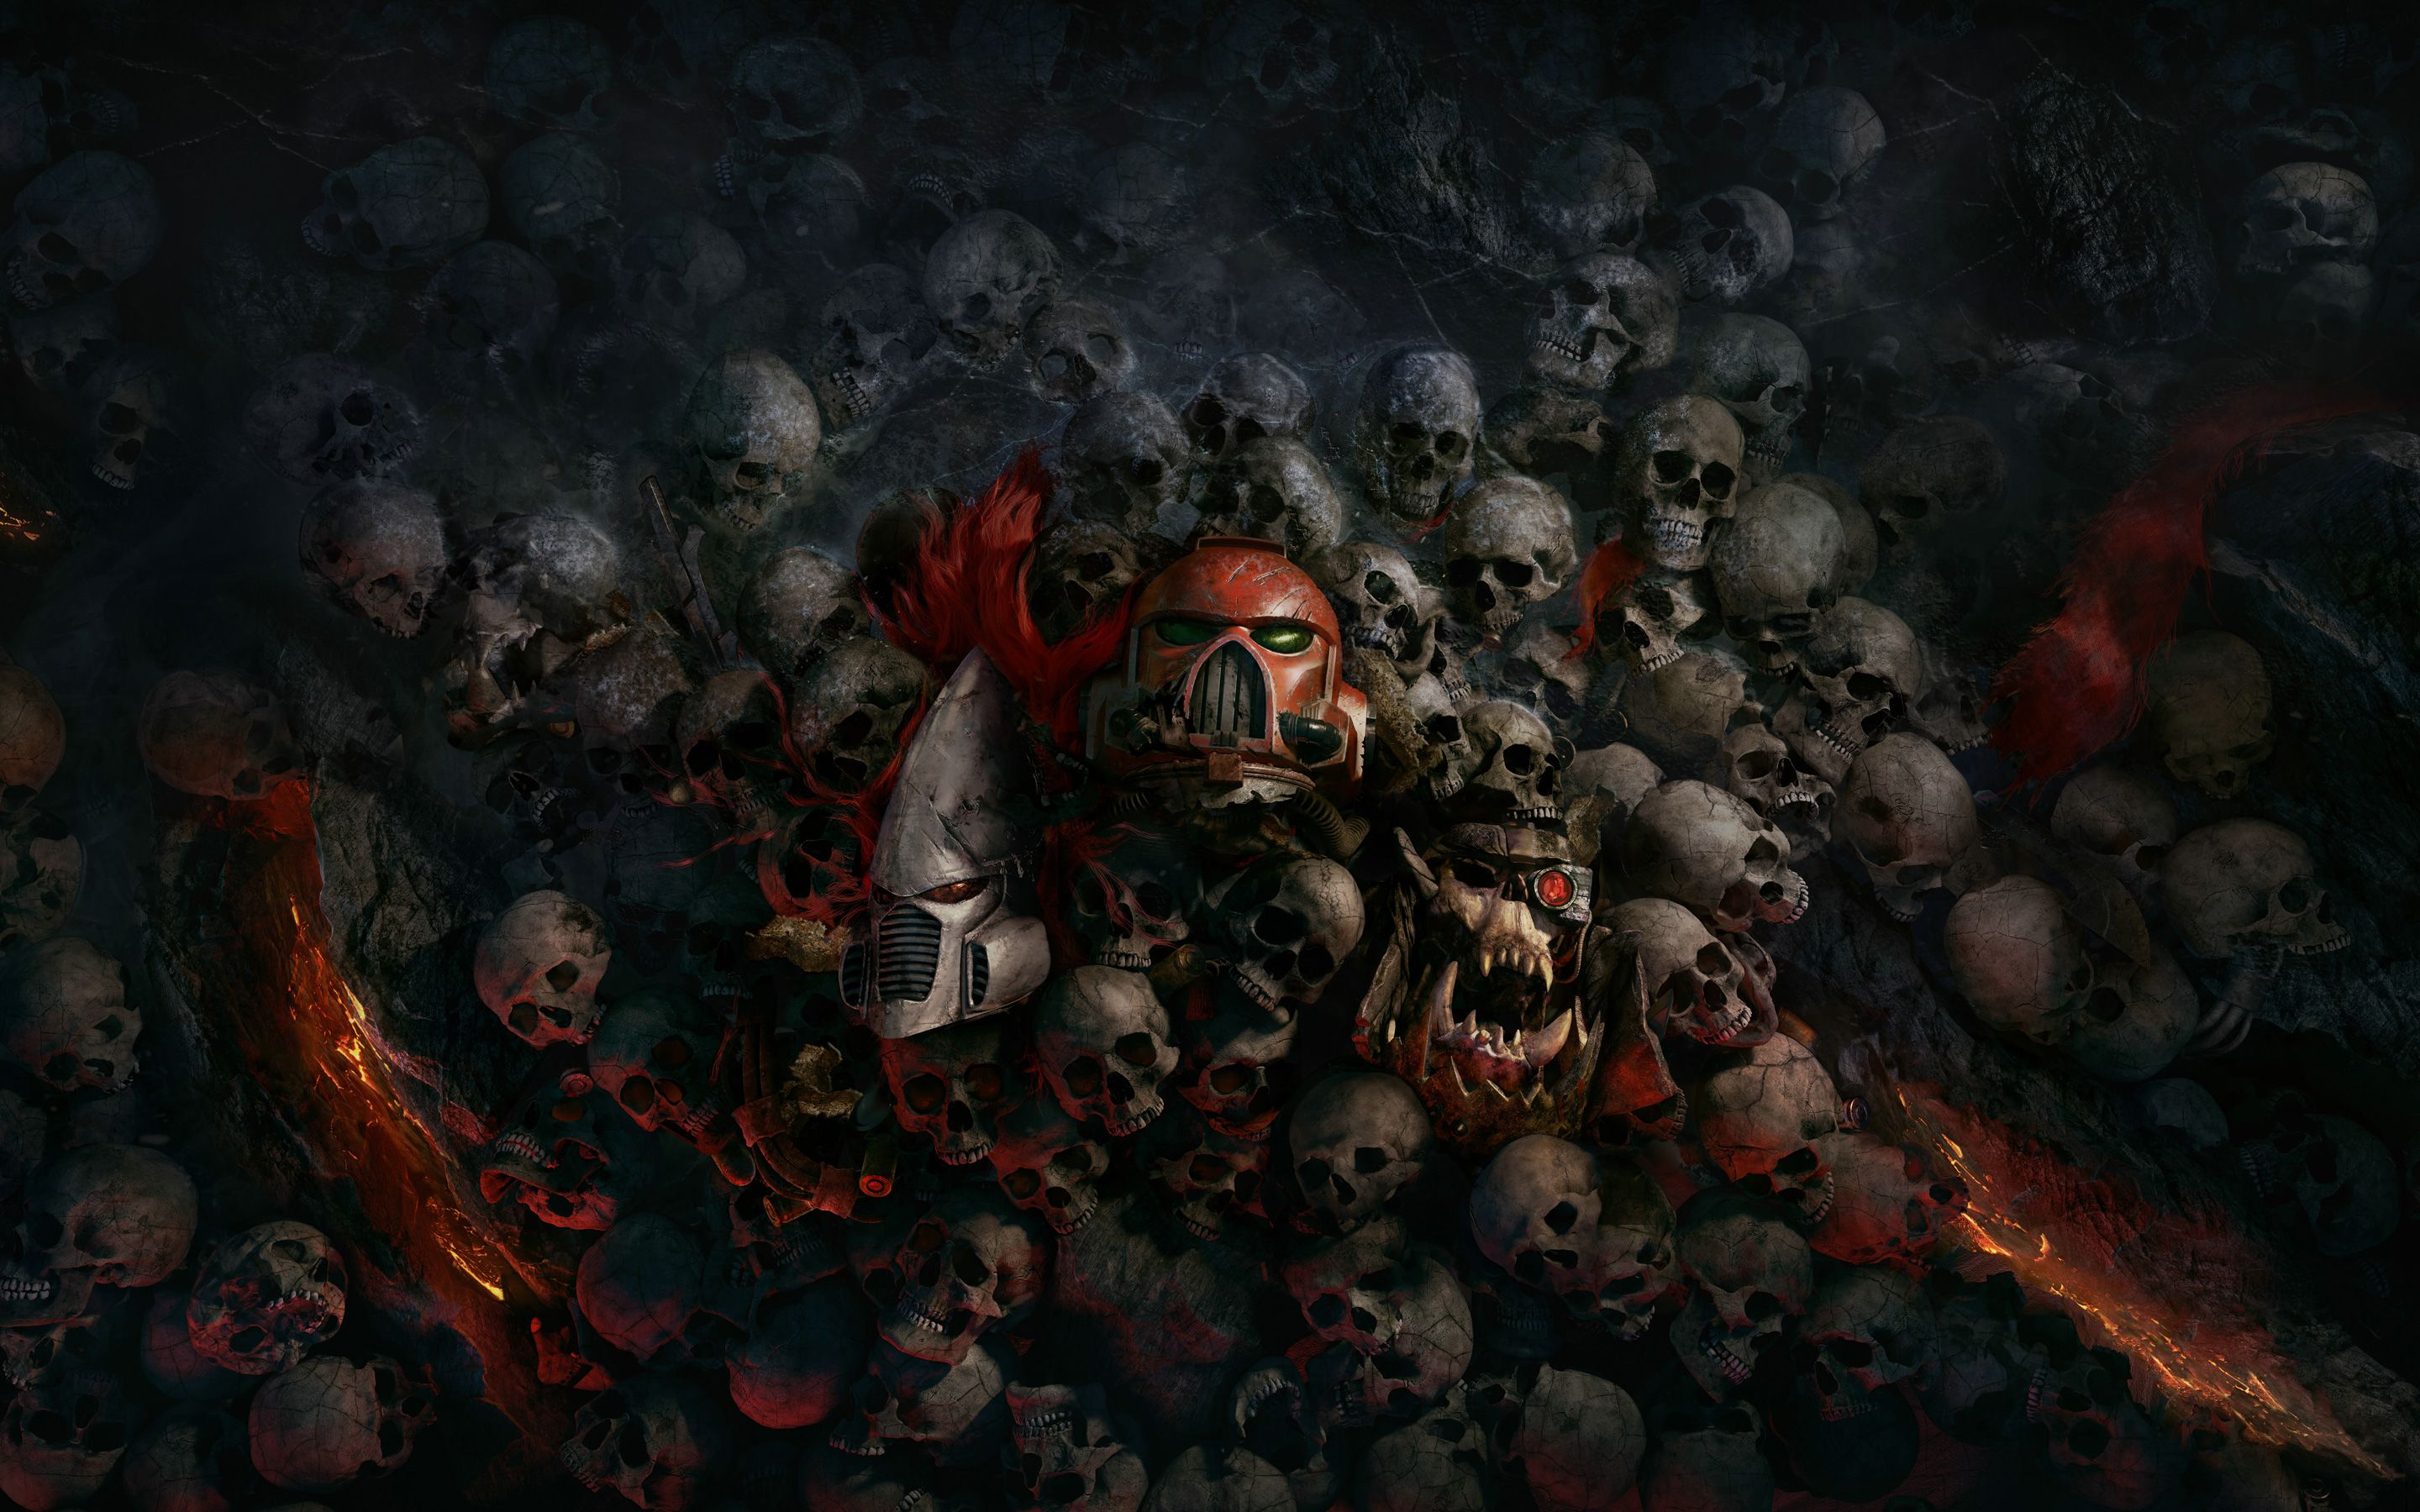 Warhammer 40000 Dawn Of War Iii 4k 8k Wallpapers Hd Wallpapers Warhammer Warhammer 40000 Skull Wallpaper